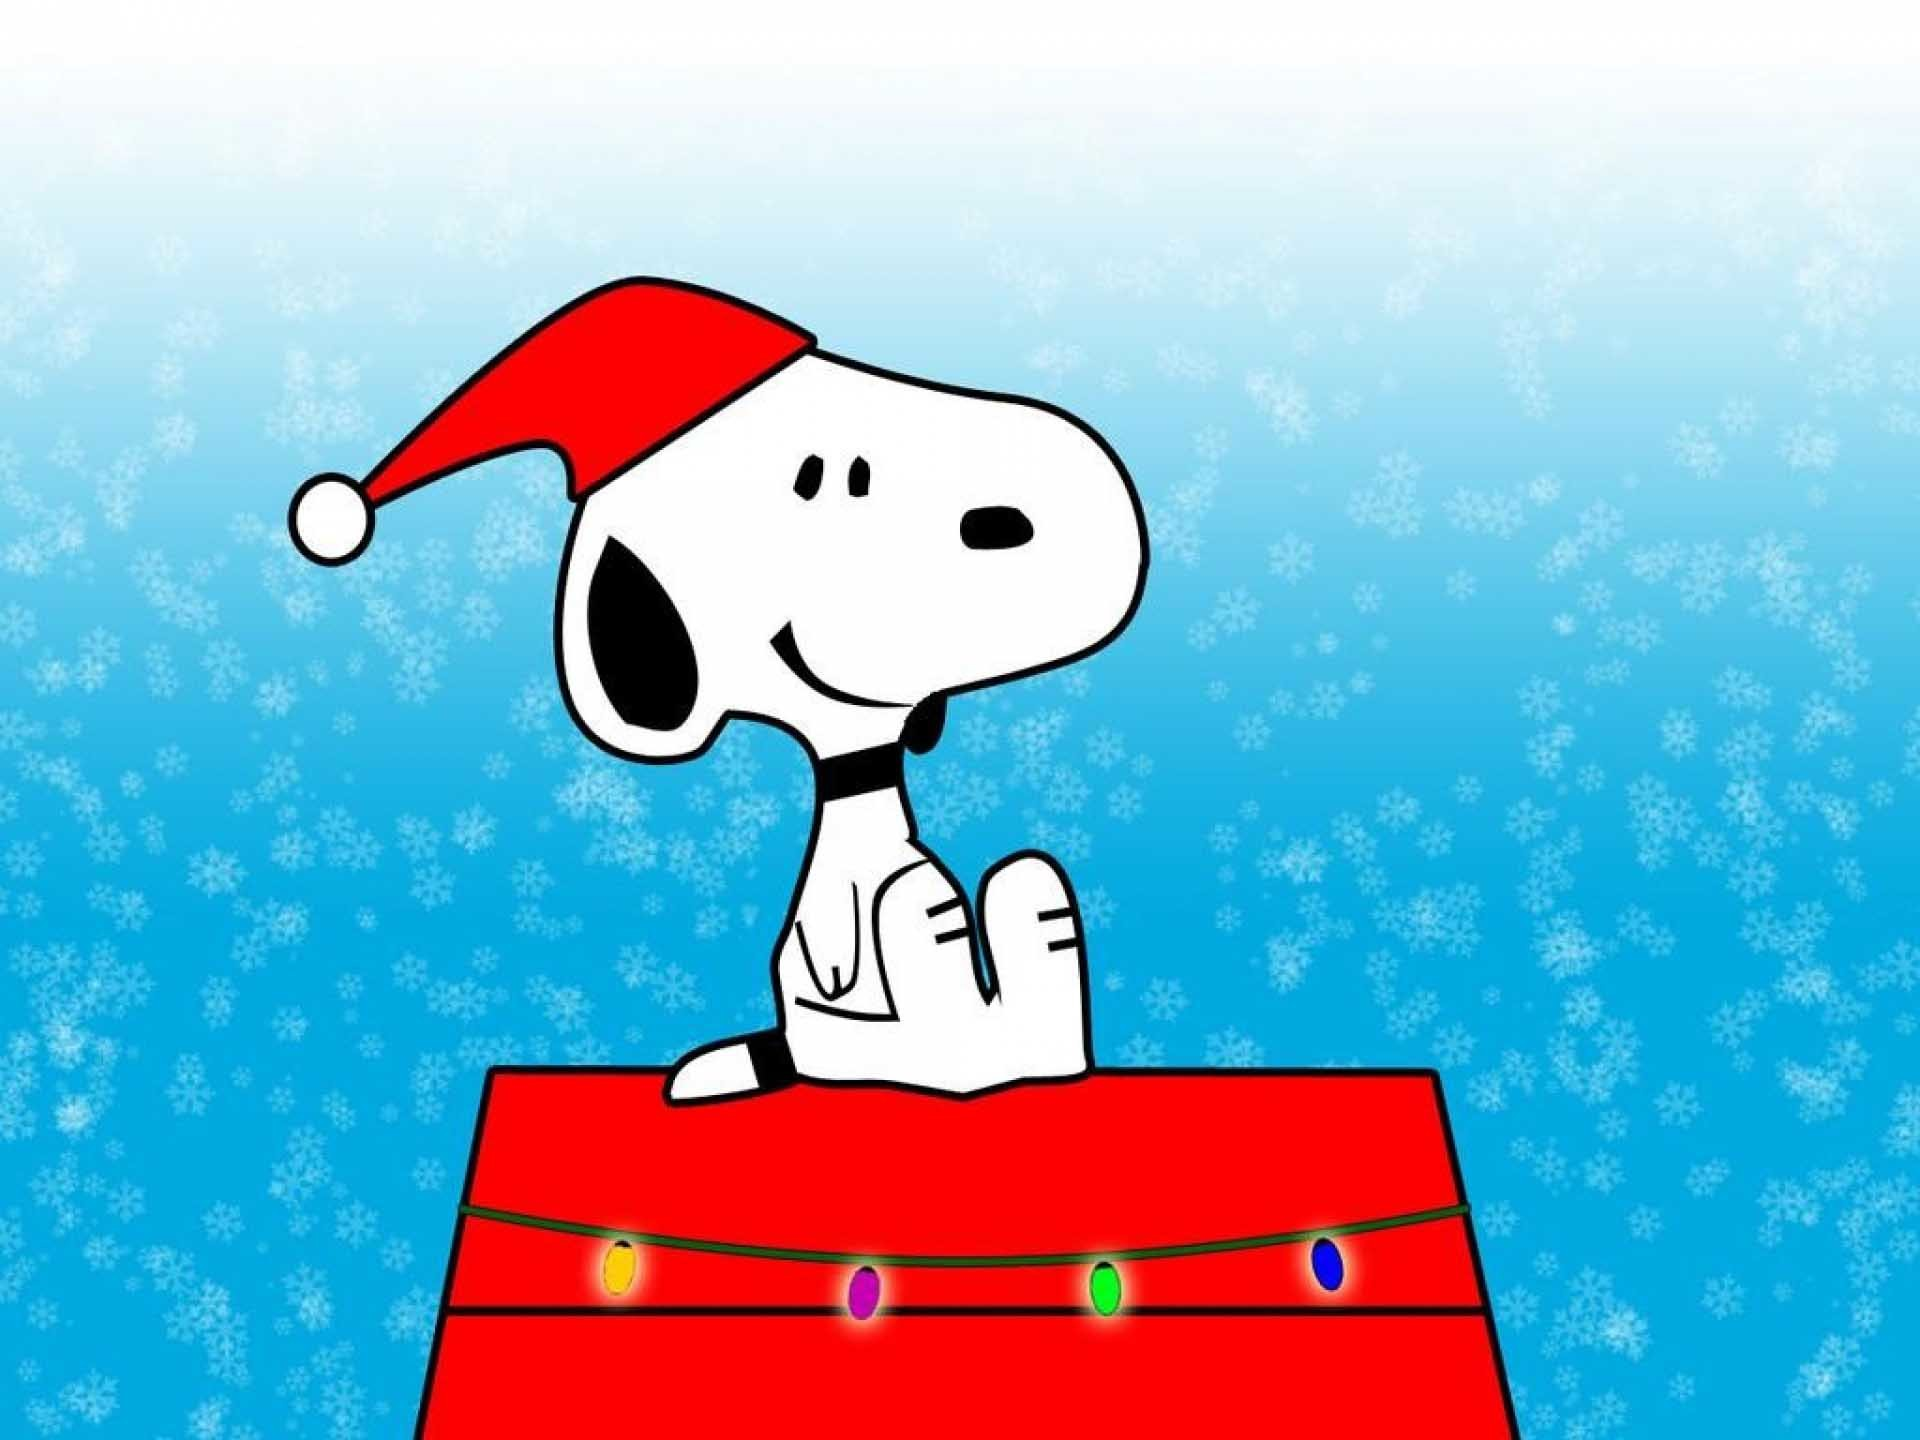 snoopy christmas wallpaper for computer (56+ images)